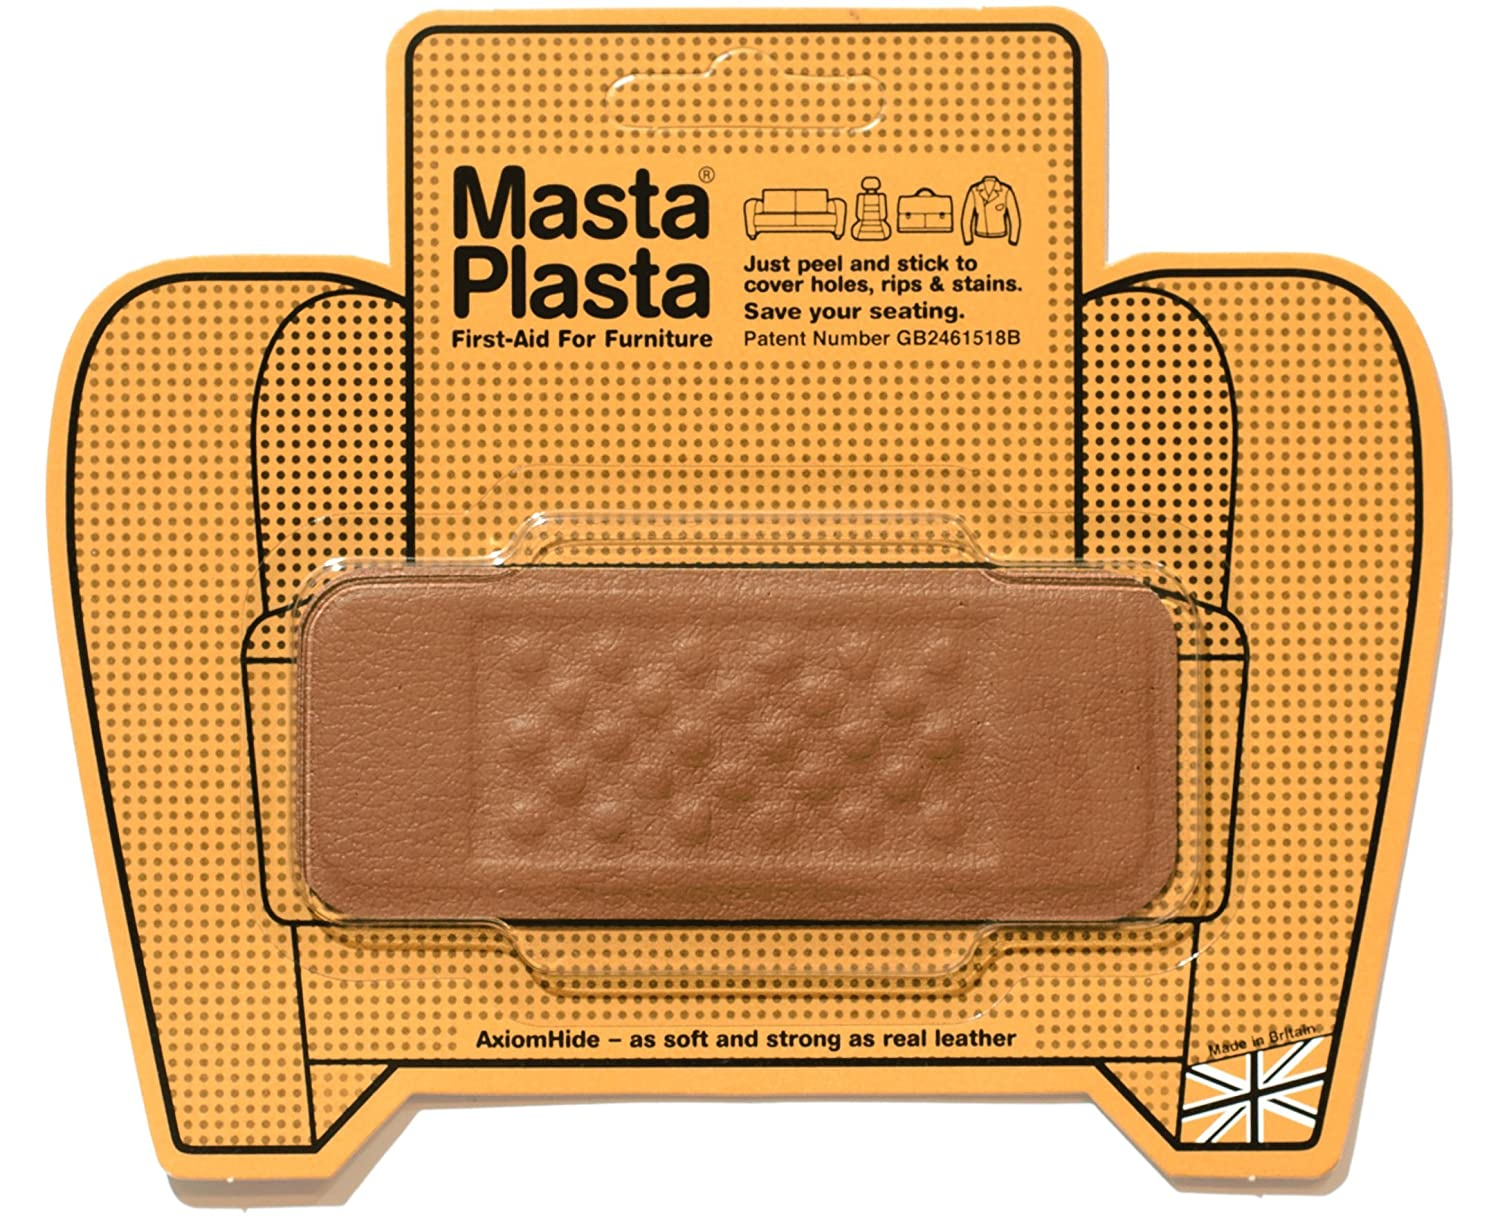 how to repair leather sofa springs low cost set online aid peel stick mastaplasta patch for holes